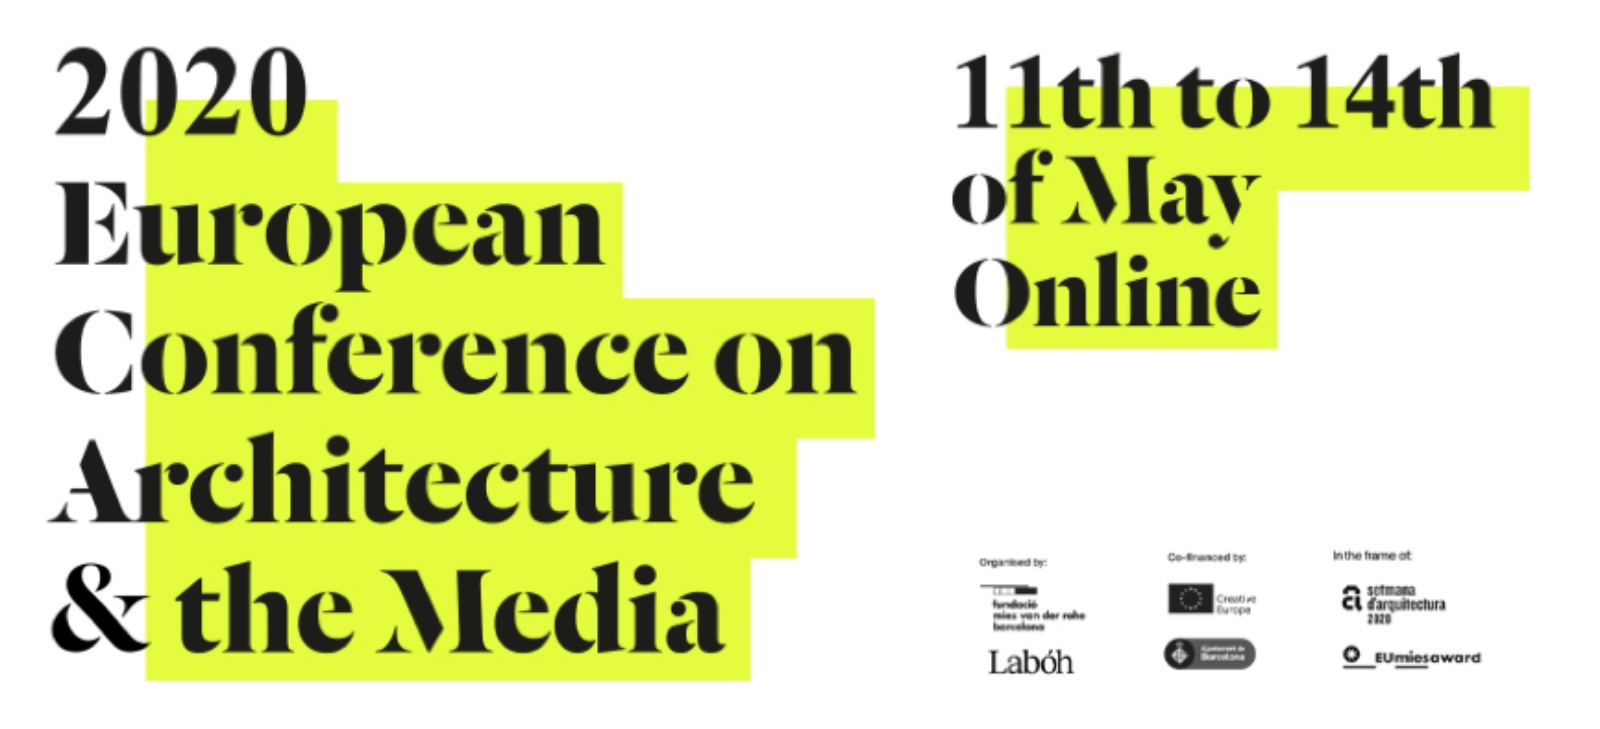 European Conference on Architecture and the Media